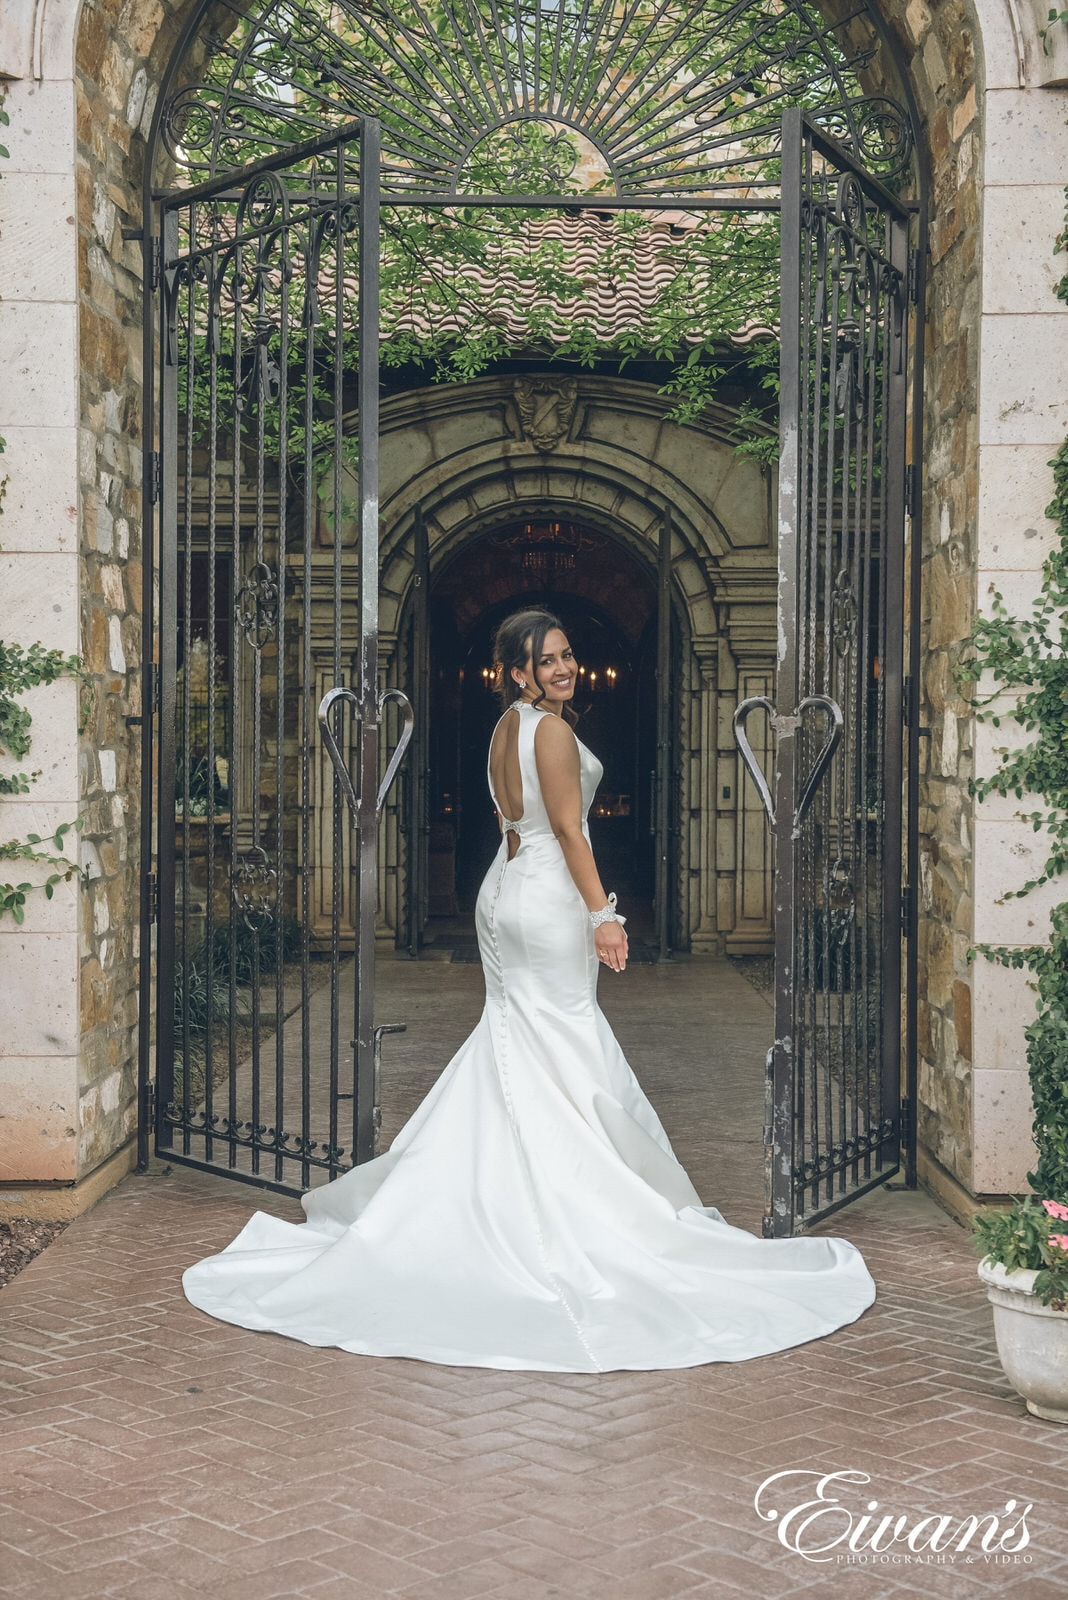 woman in a white dress standing in between open gates